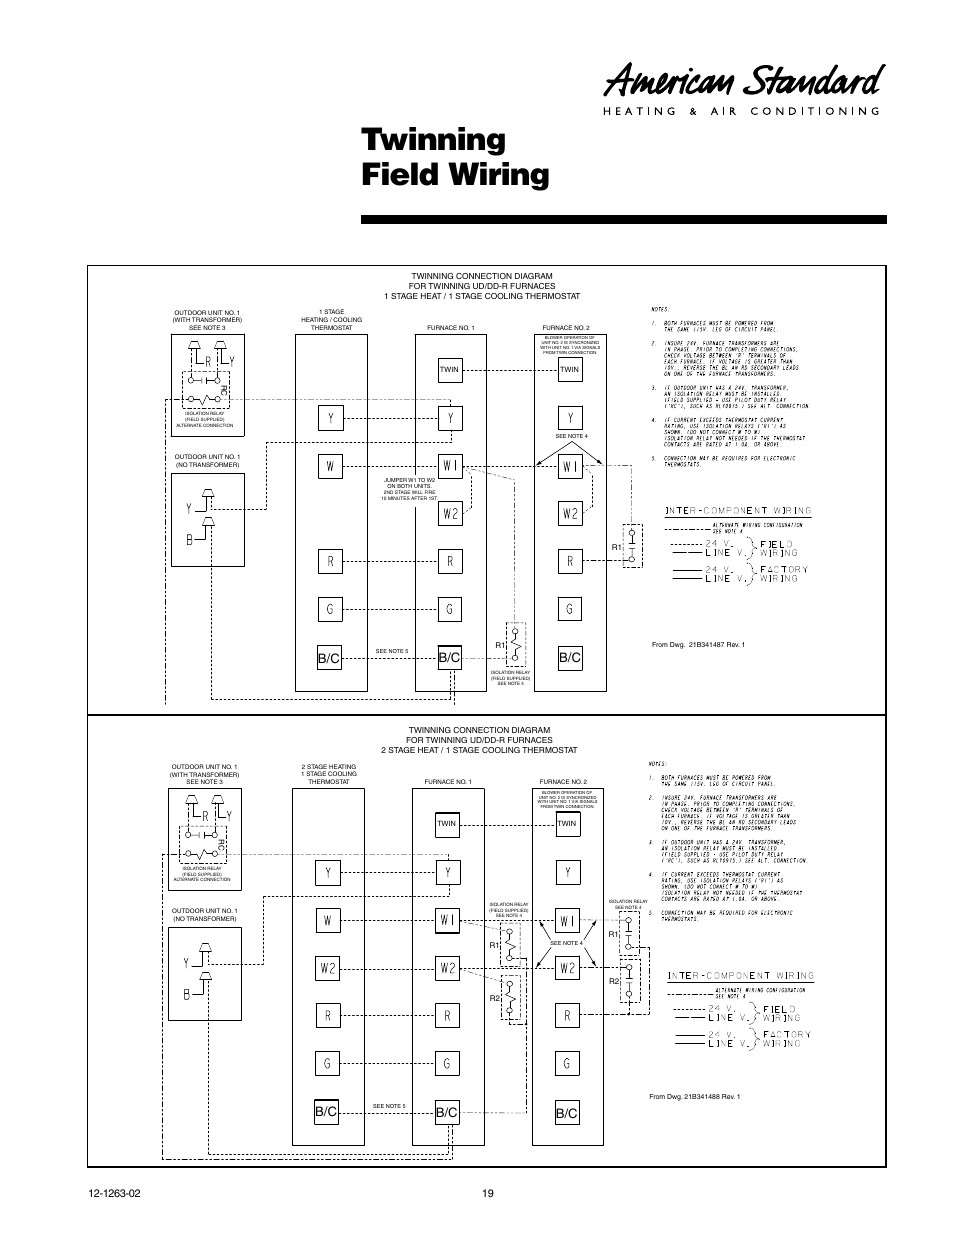 American Standard Wiring Diagrams Schematic 2019 Fender Strat Twinning Field Freedom 80 User Diagram Stratocaster